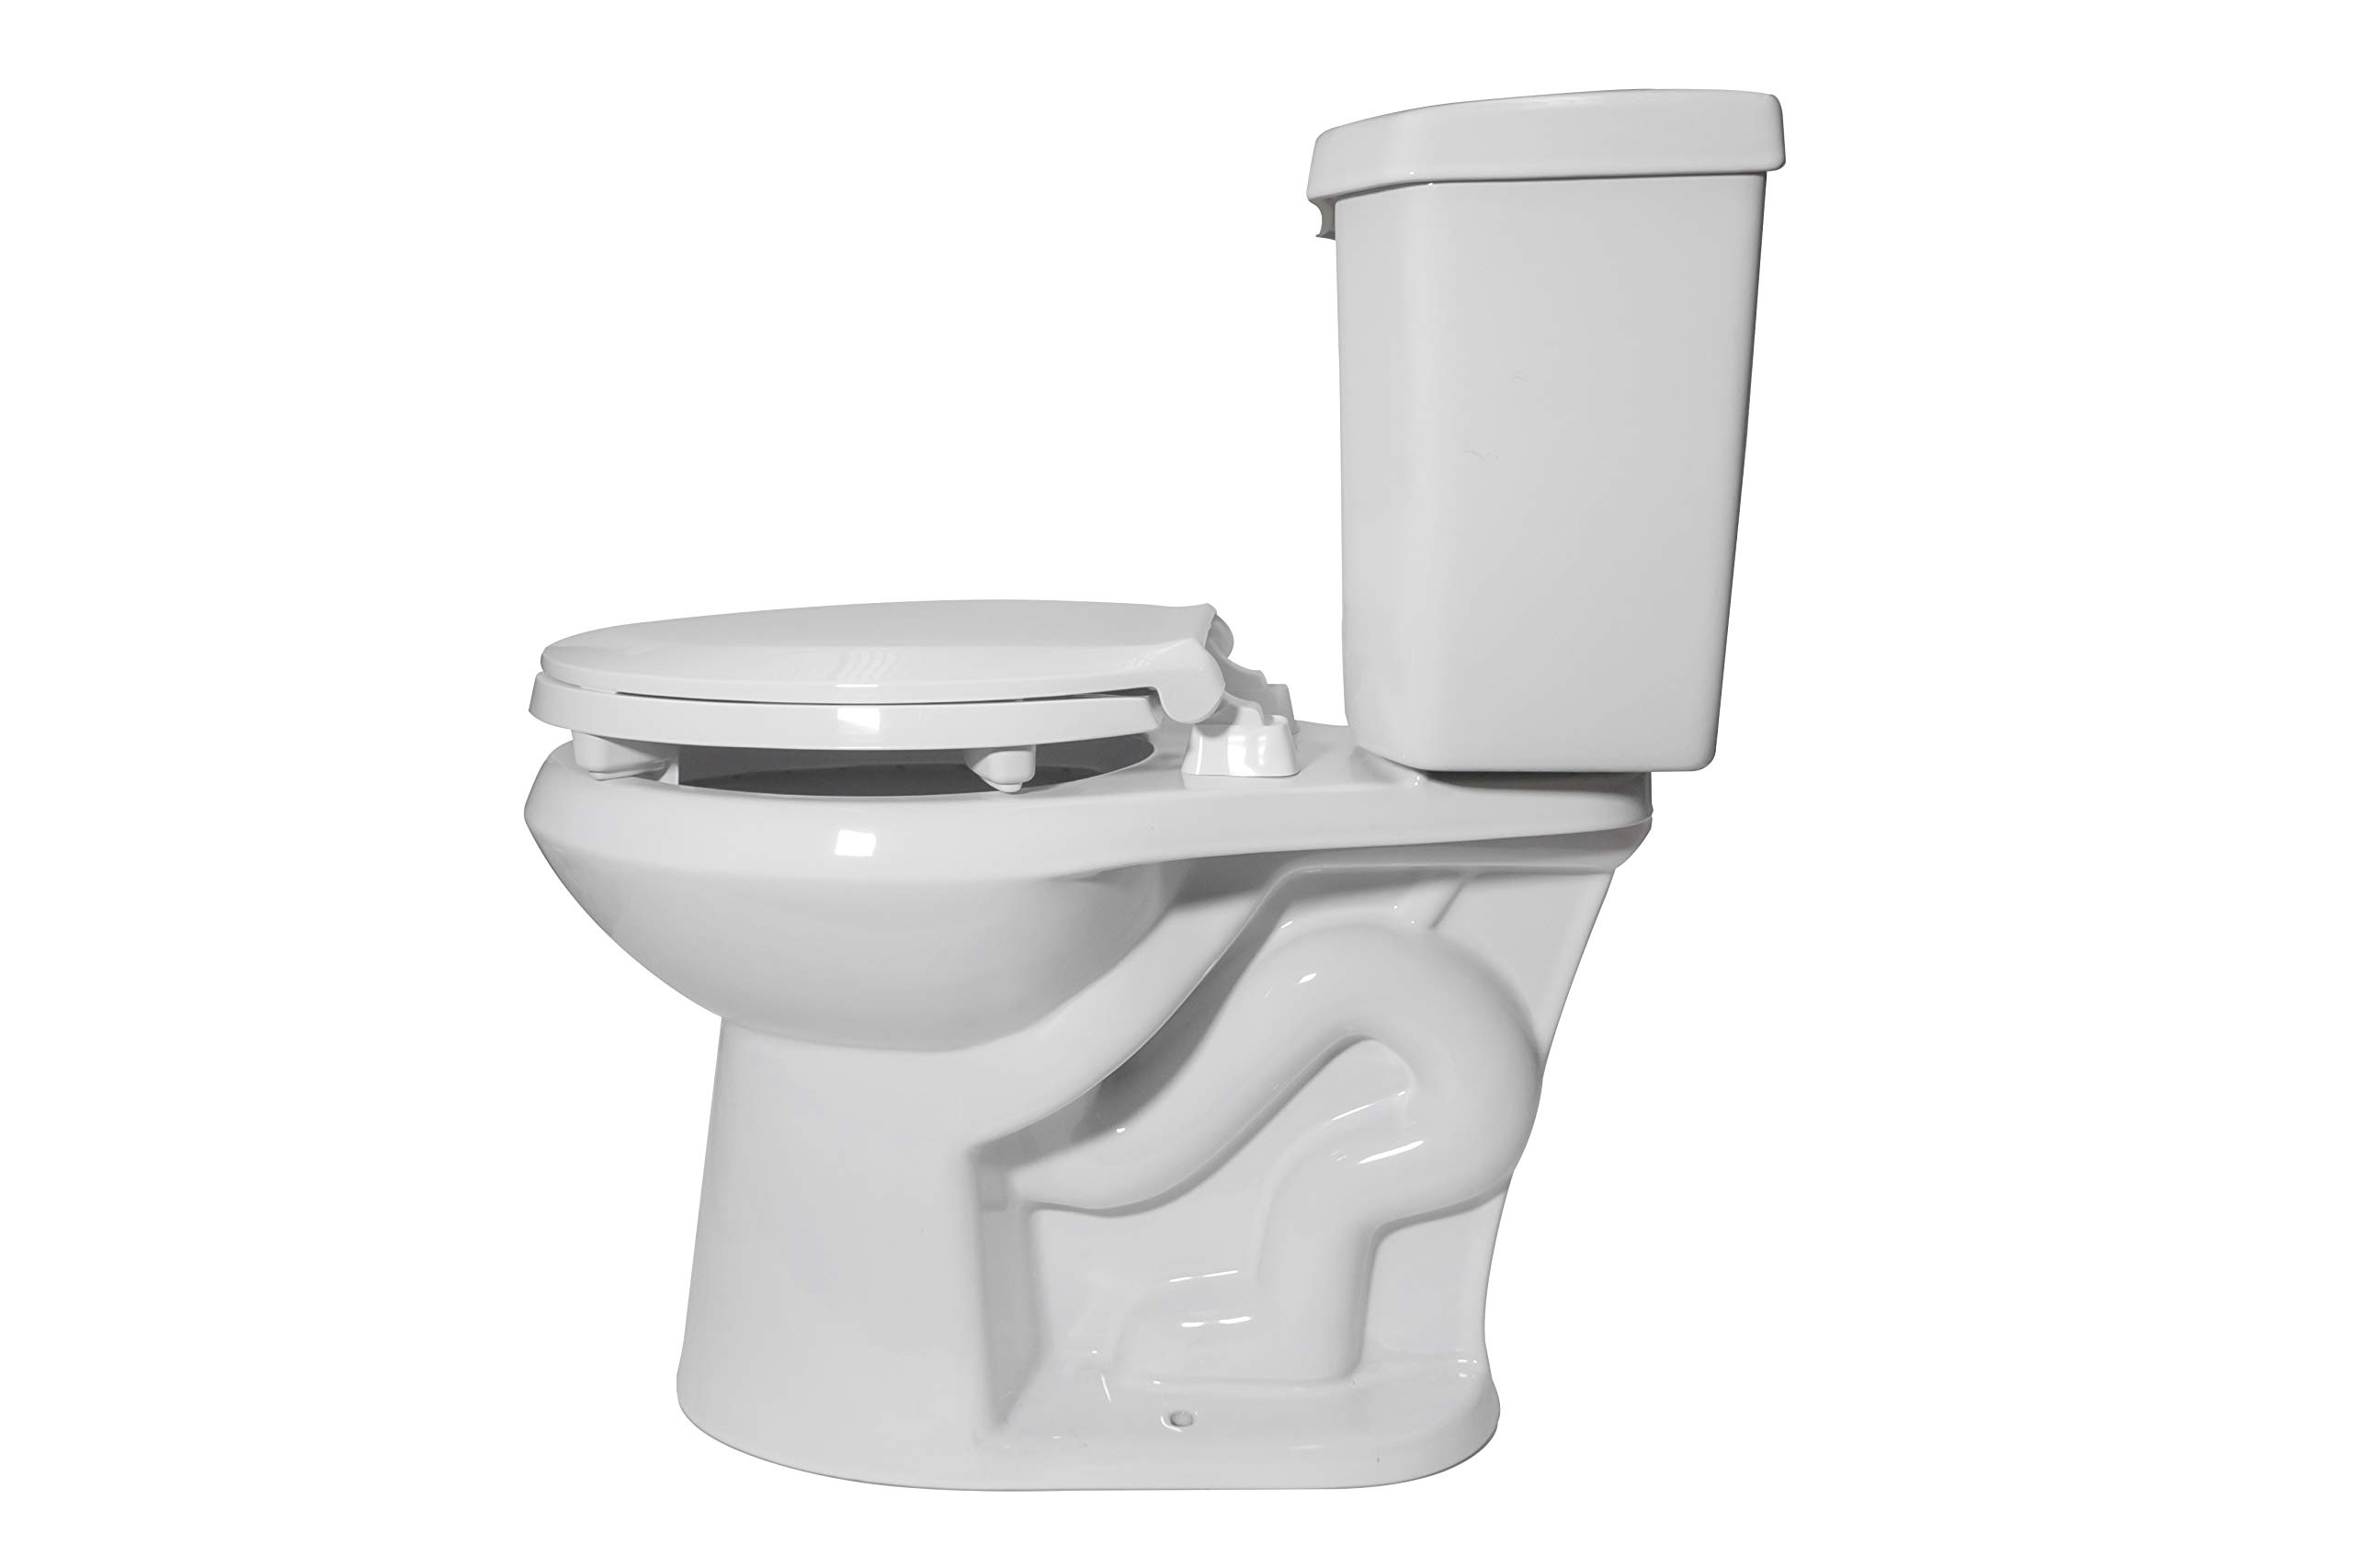 Centoco HL440STS-001 Round 2'' Lift, Raised Plastic Toilet Seat, Closed Front with Cover, ADA Compliant Handicap Medical Assistance Seat, White